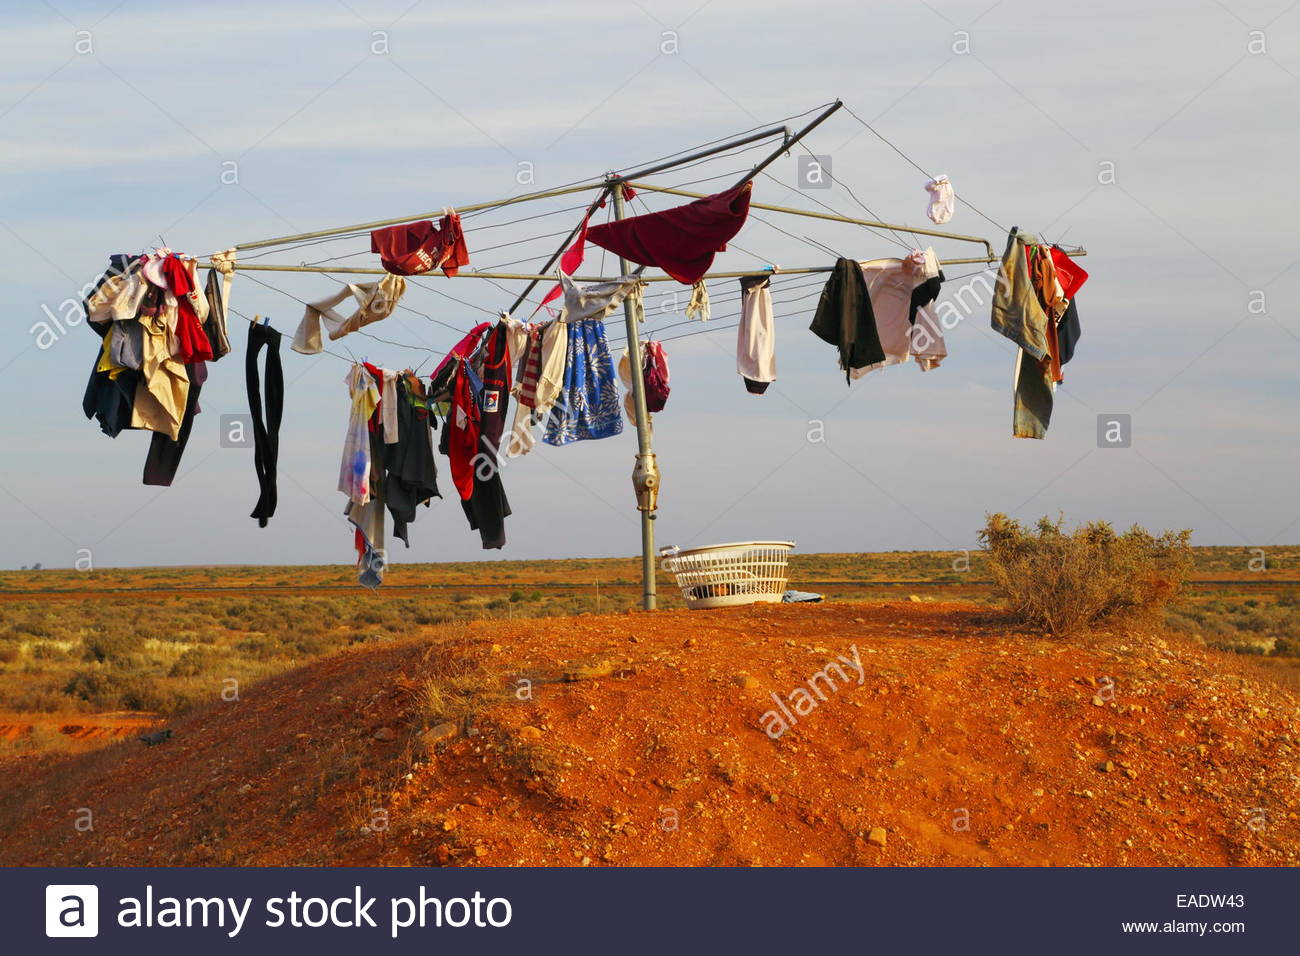 A Hills Hoist clothesline in the Outback. A joyful oddity along the highway's edge in South Australia. - Stock Image